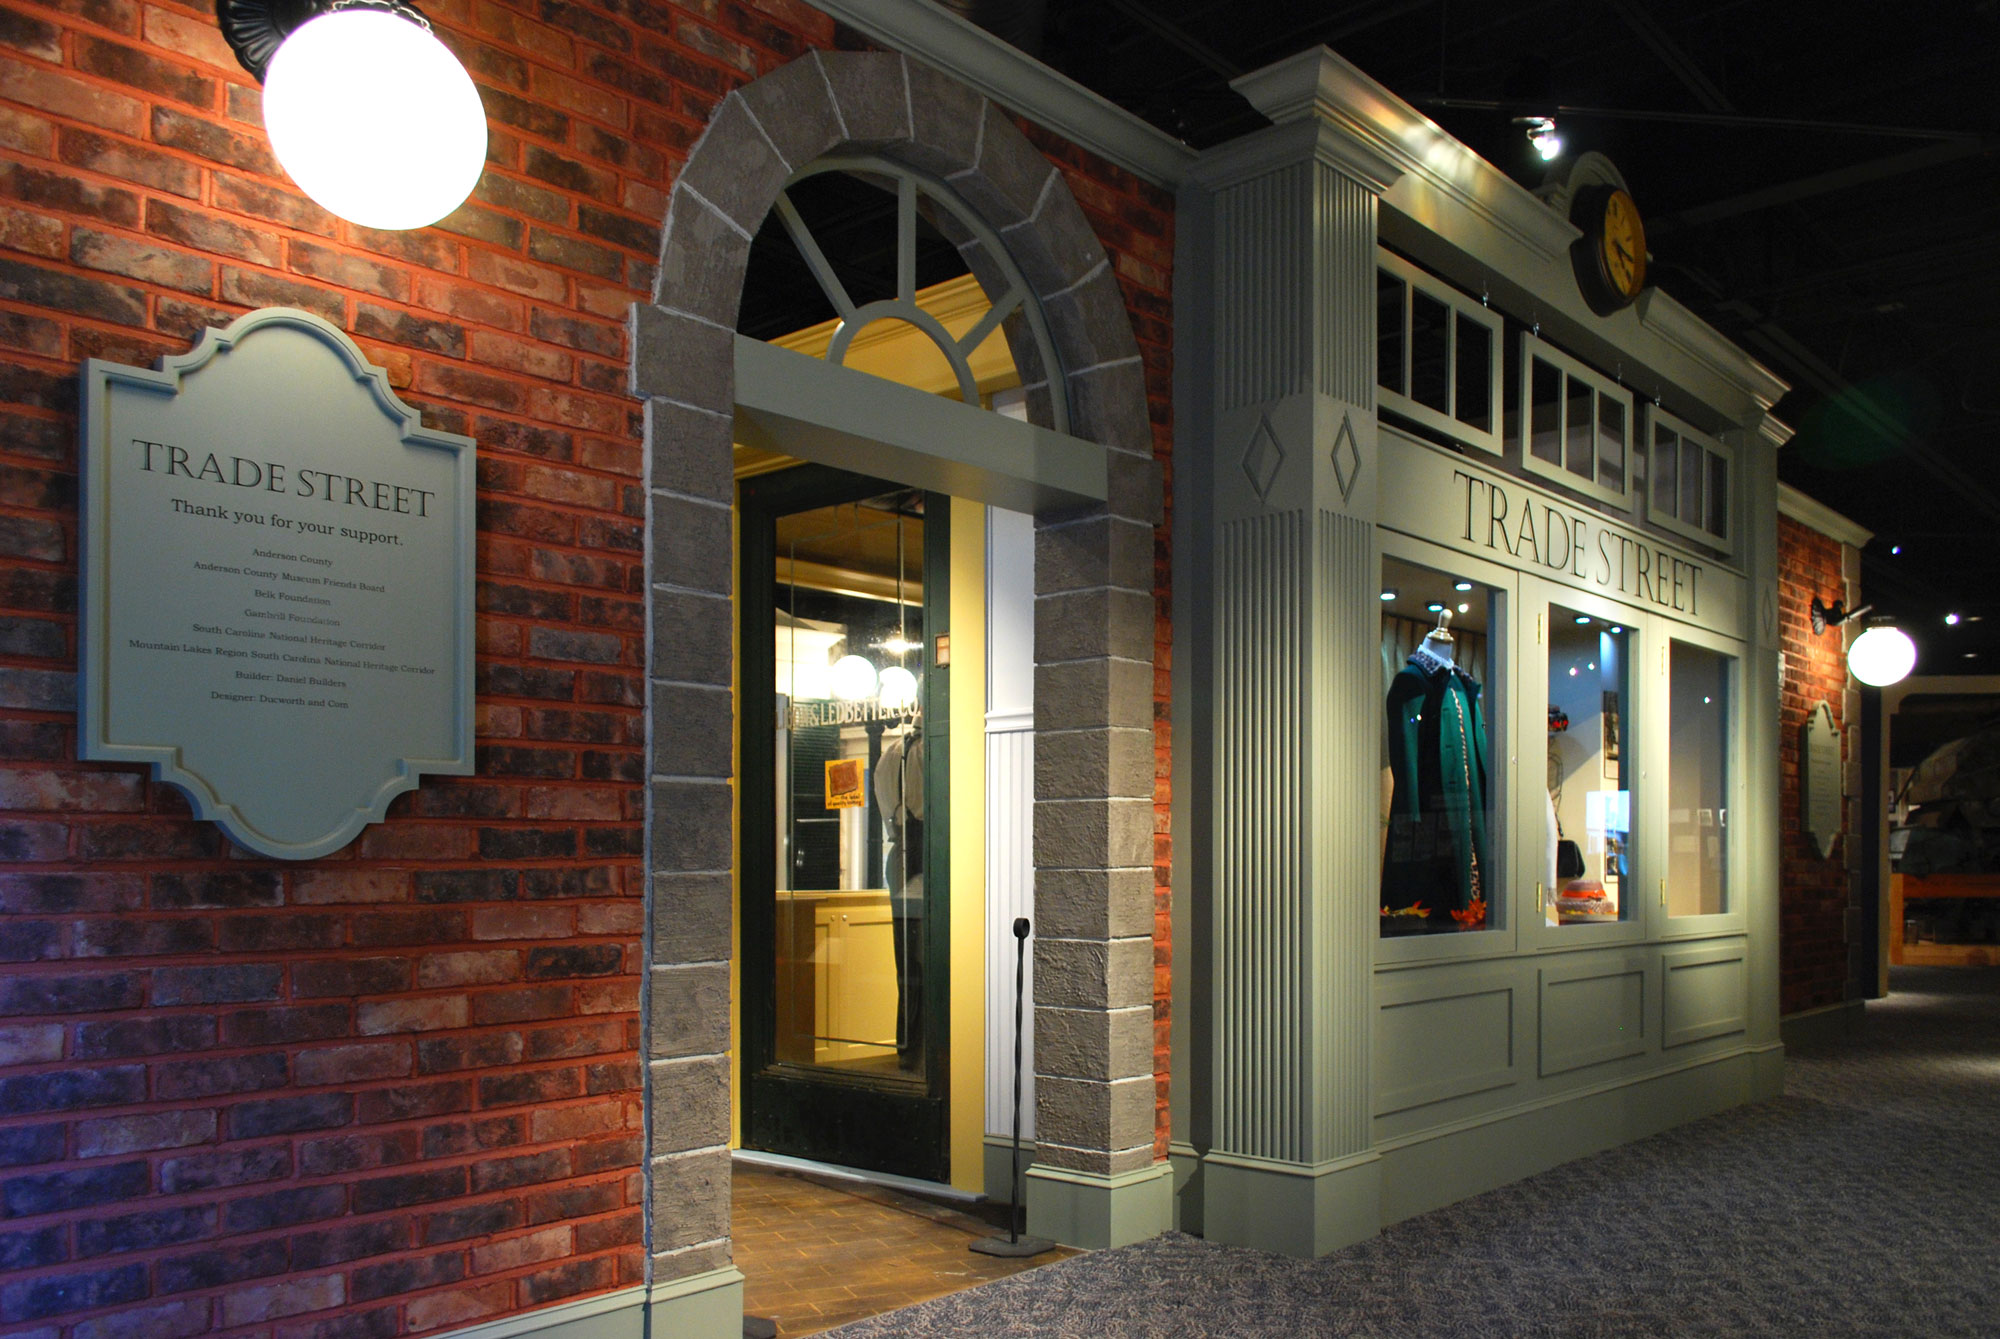 Exterior of Trade Street Exhibit - Anderson County Museum